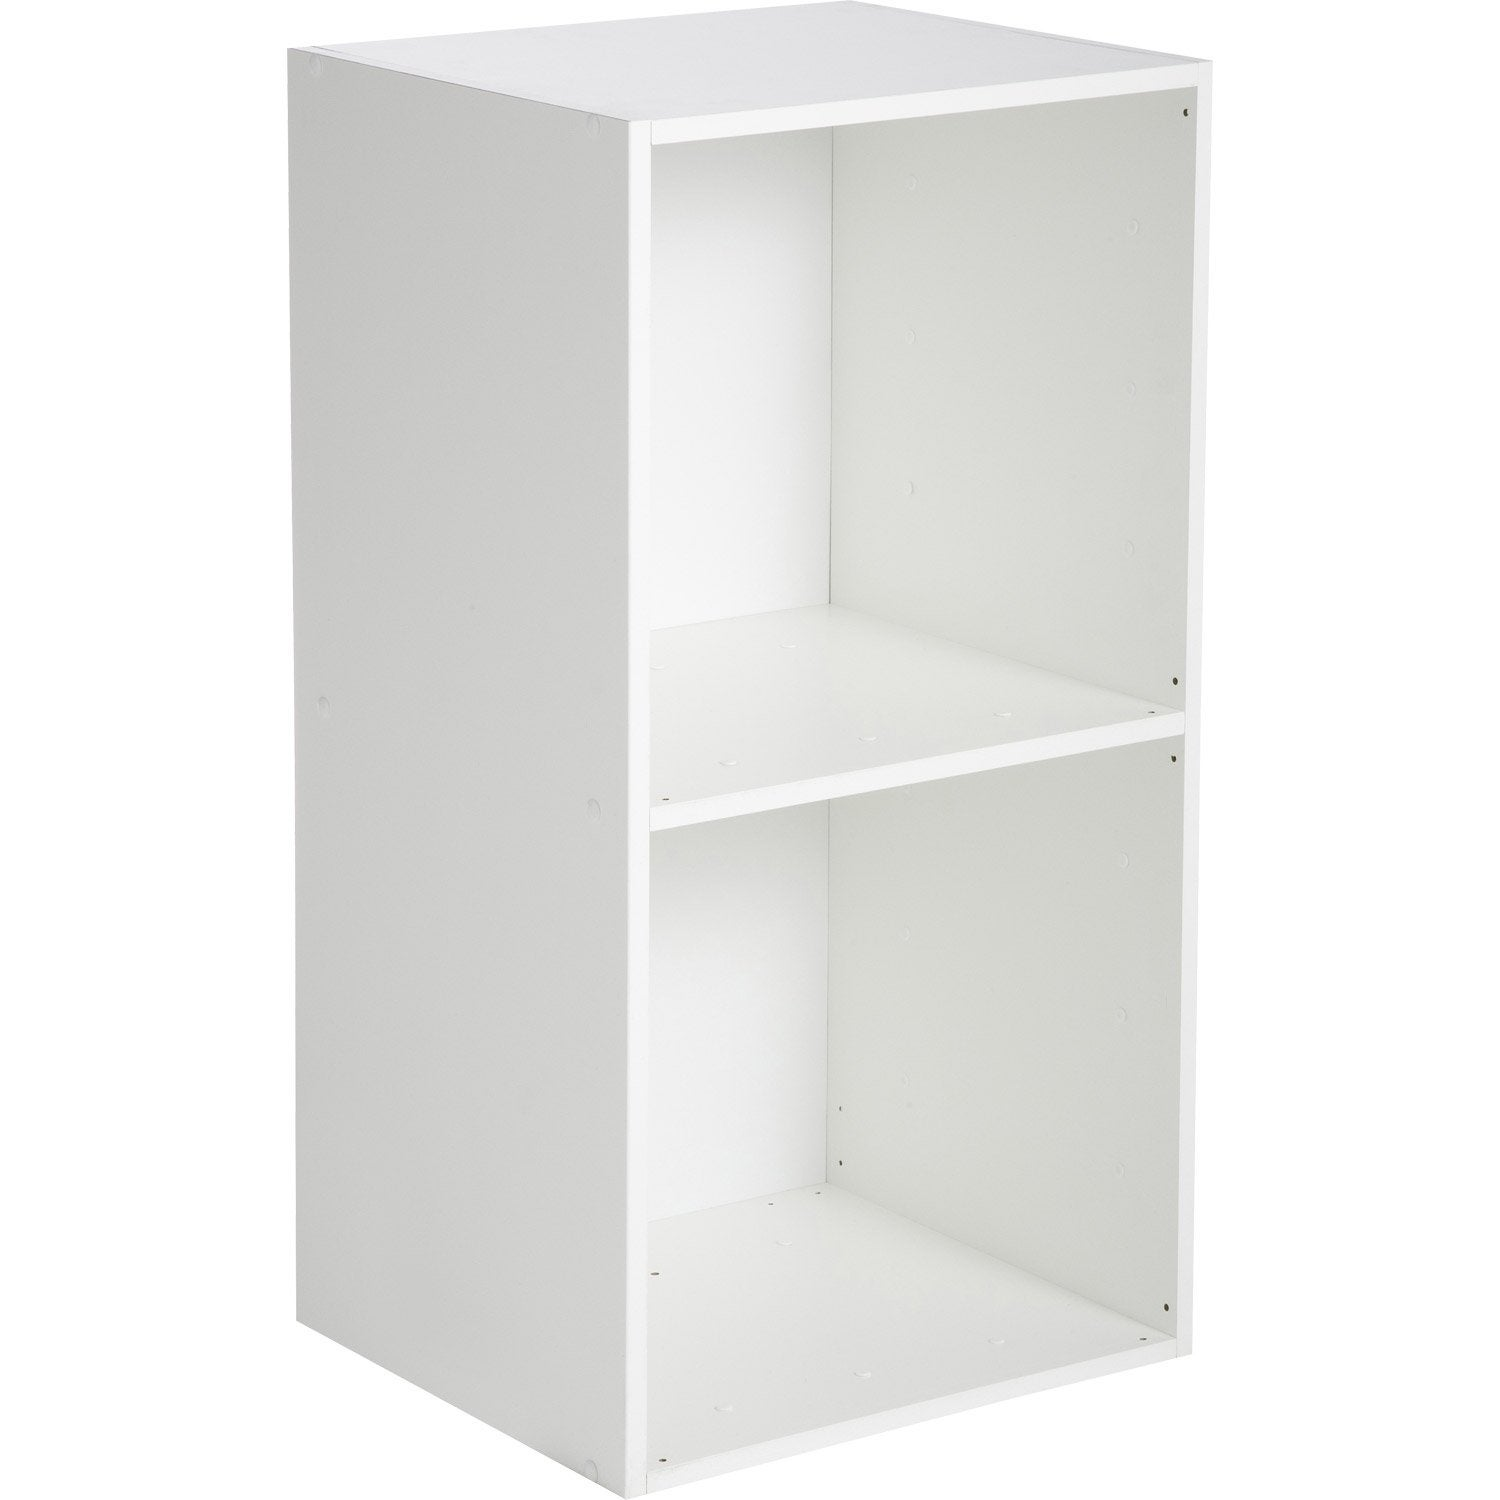 Etag re 2 cases multikaz blanc x x cm leroy merlin - Cube de rangement avec porte ...